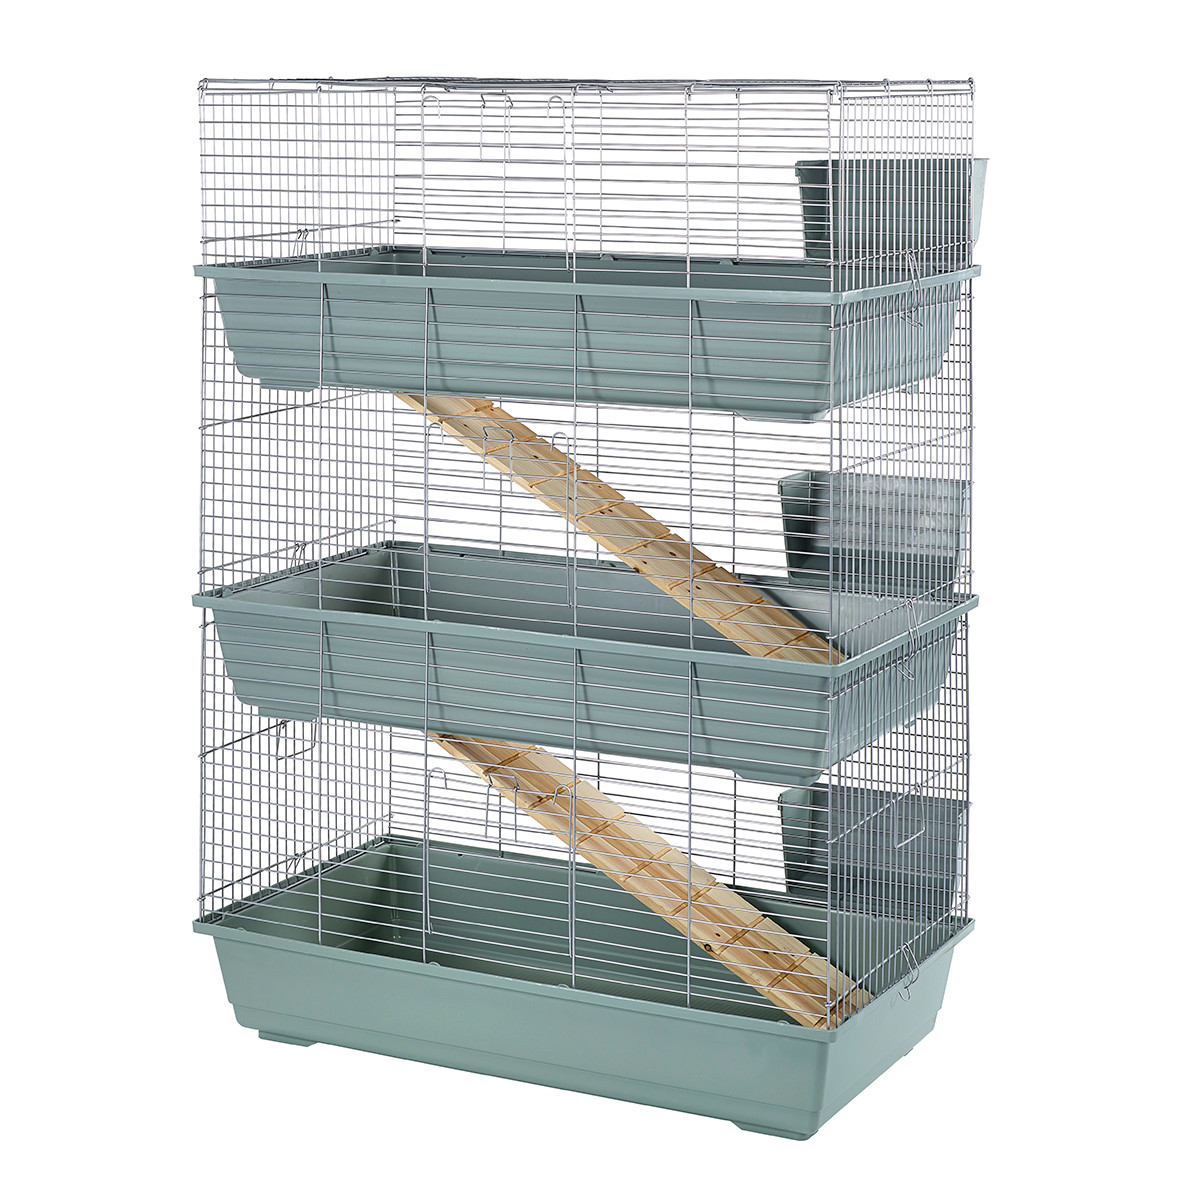 rabbit 100 triple cage indoor for rabbits guinea pigs. Black Bedroom Furniture Sets. Home Design Ideas